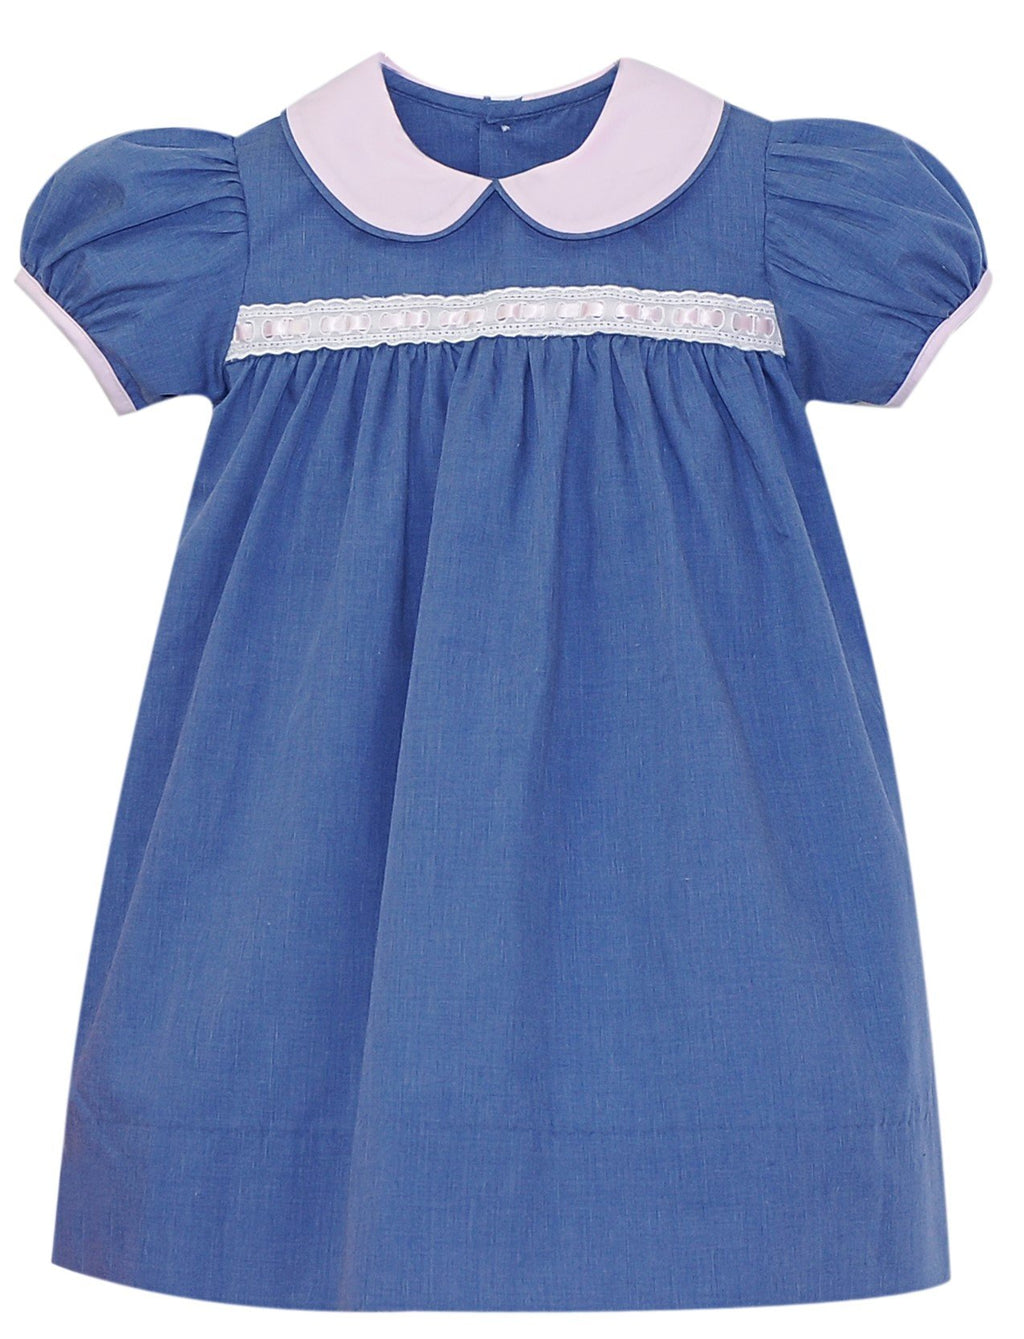 Lullaby Set 1956 Original Ribbon Dress